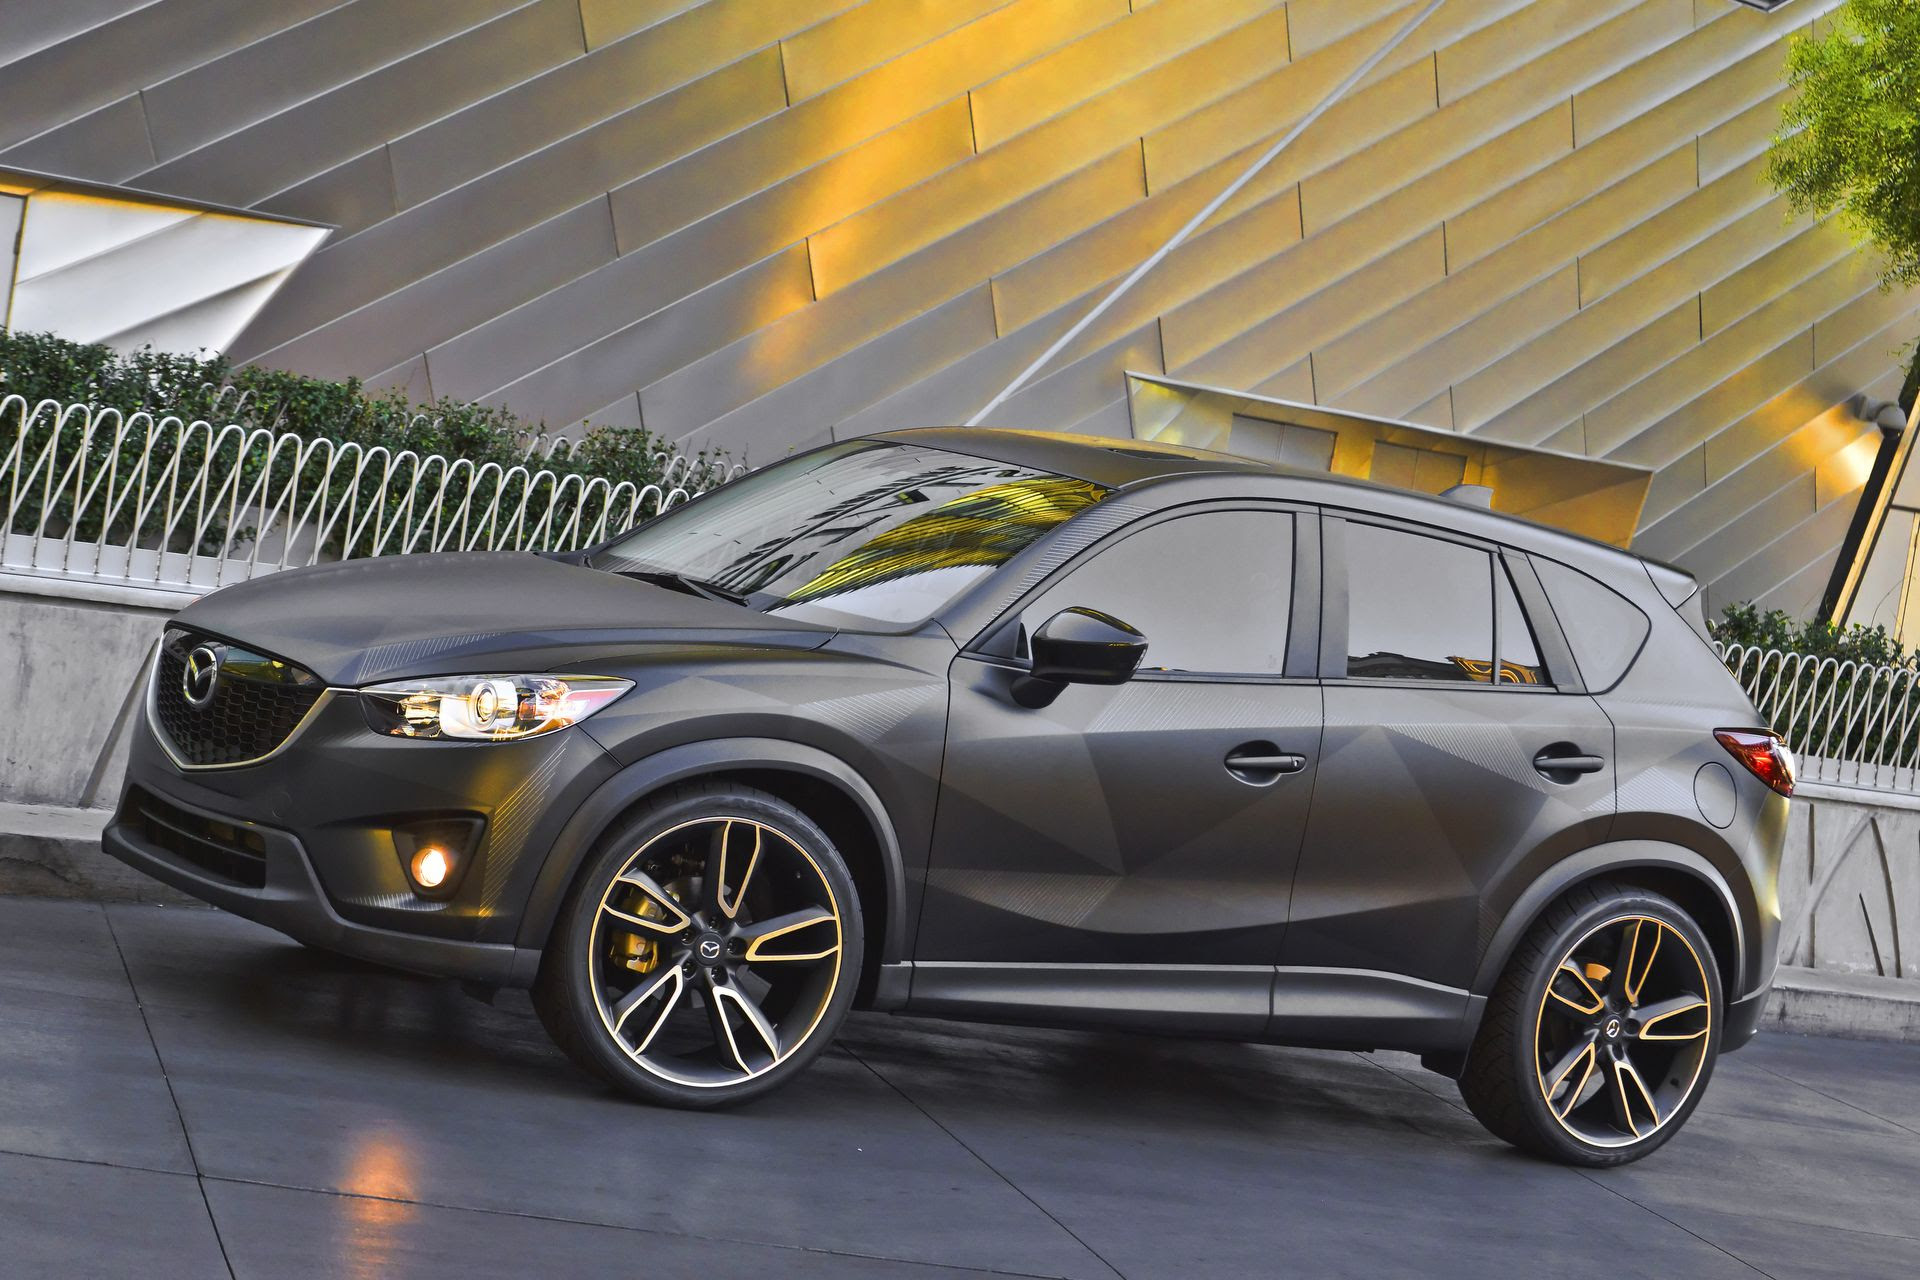 Mazda CX-5 Urban Gallery (1920×1280 Resolution Wallpaper Image)